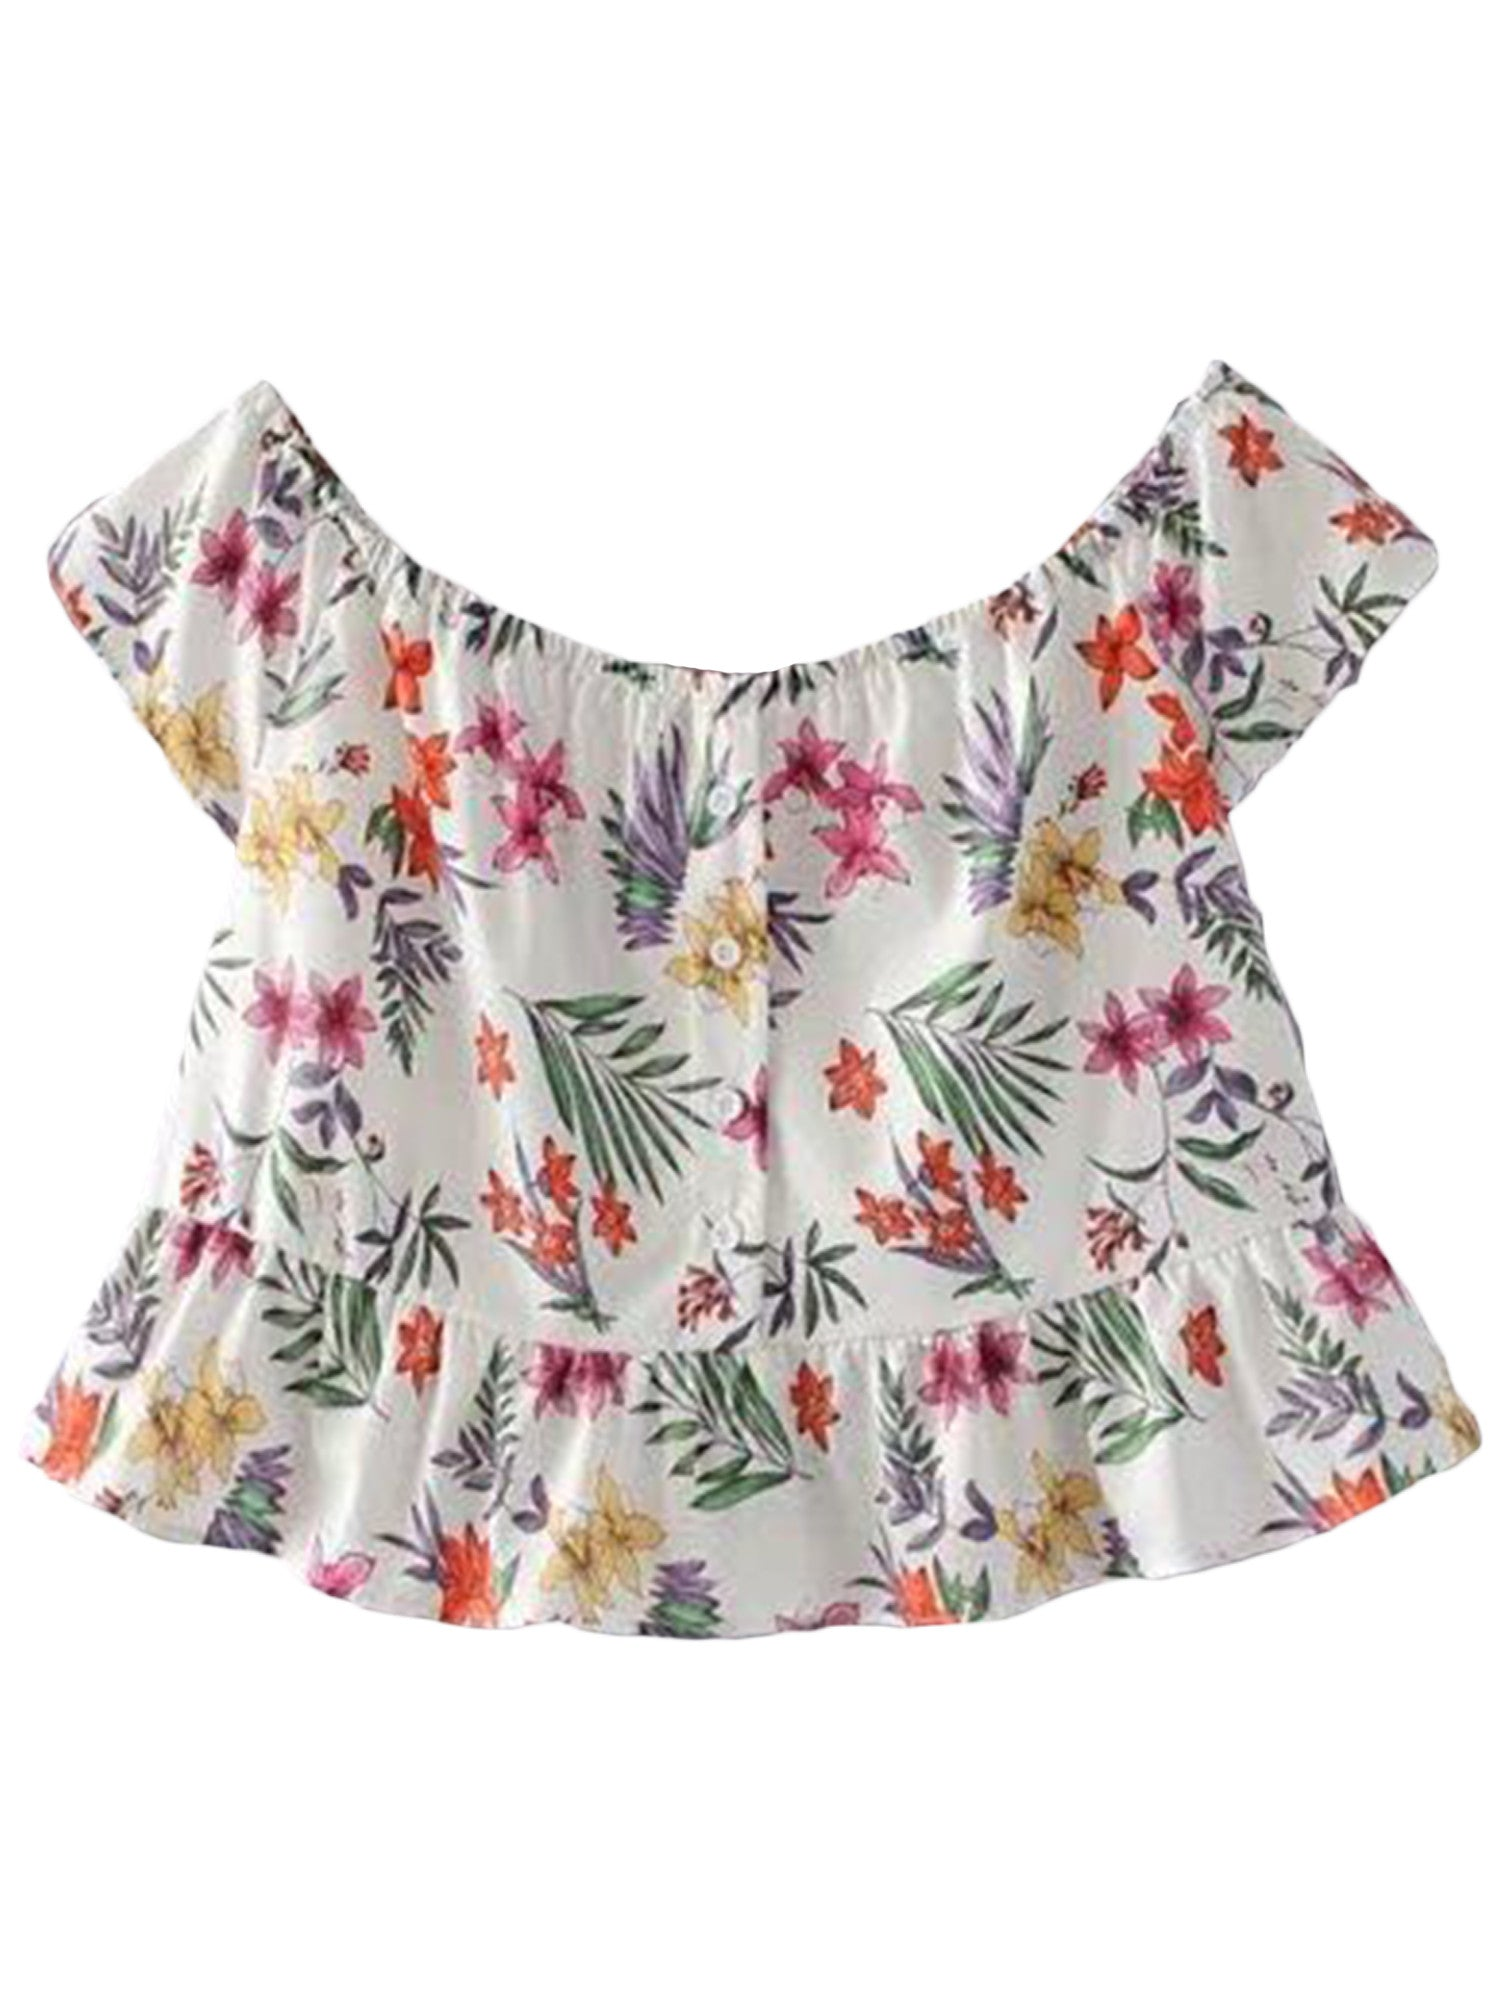 'Presley' Floral Off Shoulder Button Up Peplum Top